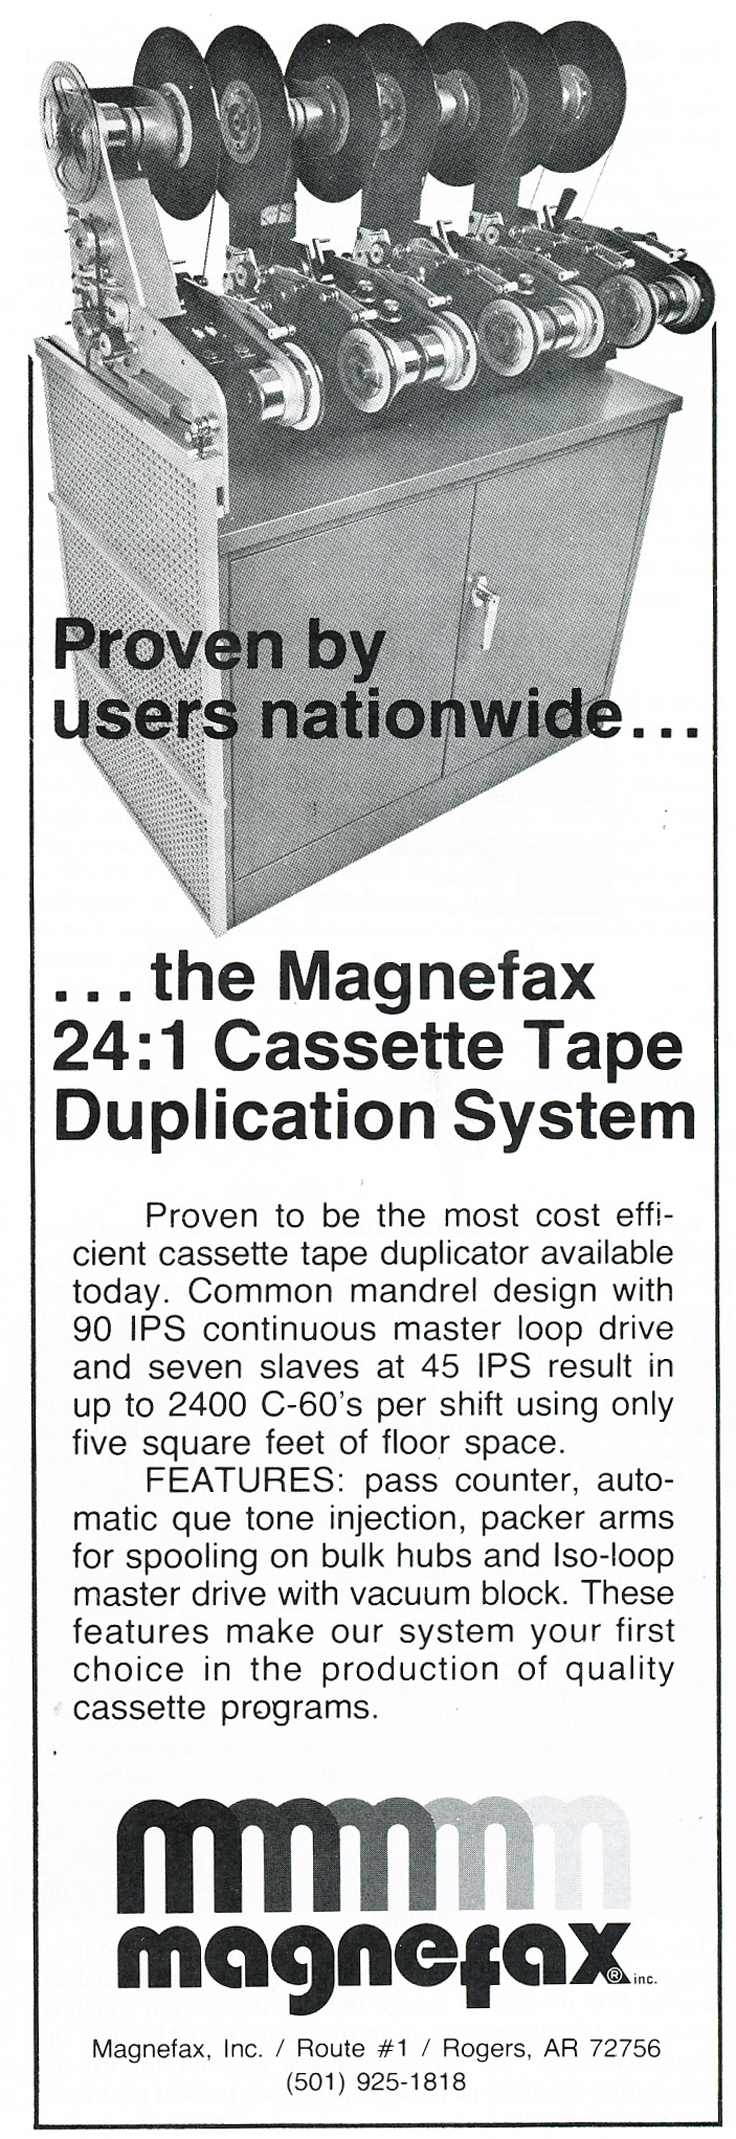 1979 ad for Magnefax reel tape duplication in Reel2ReelTexas.com's vintage recording collection